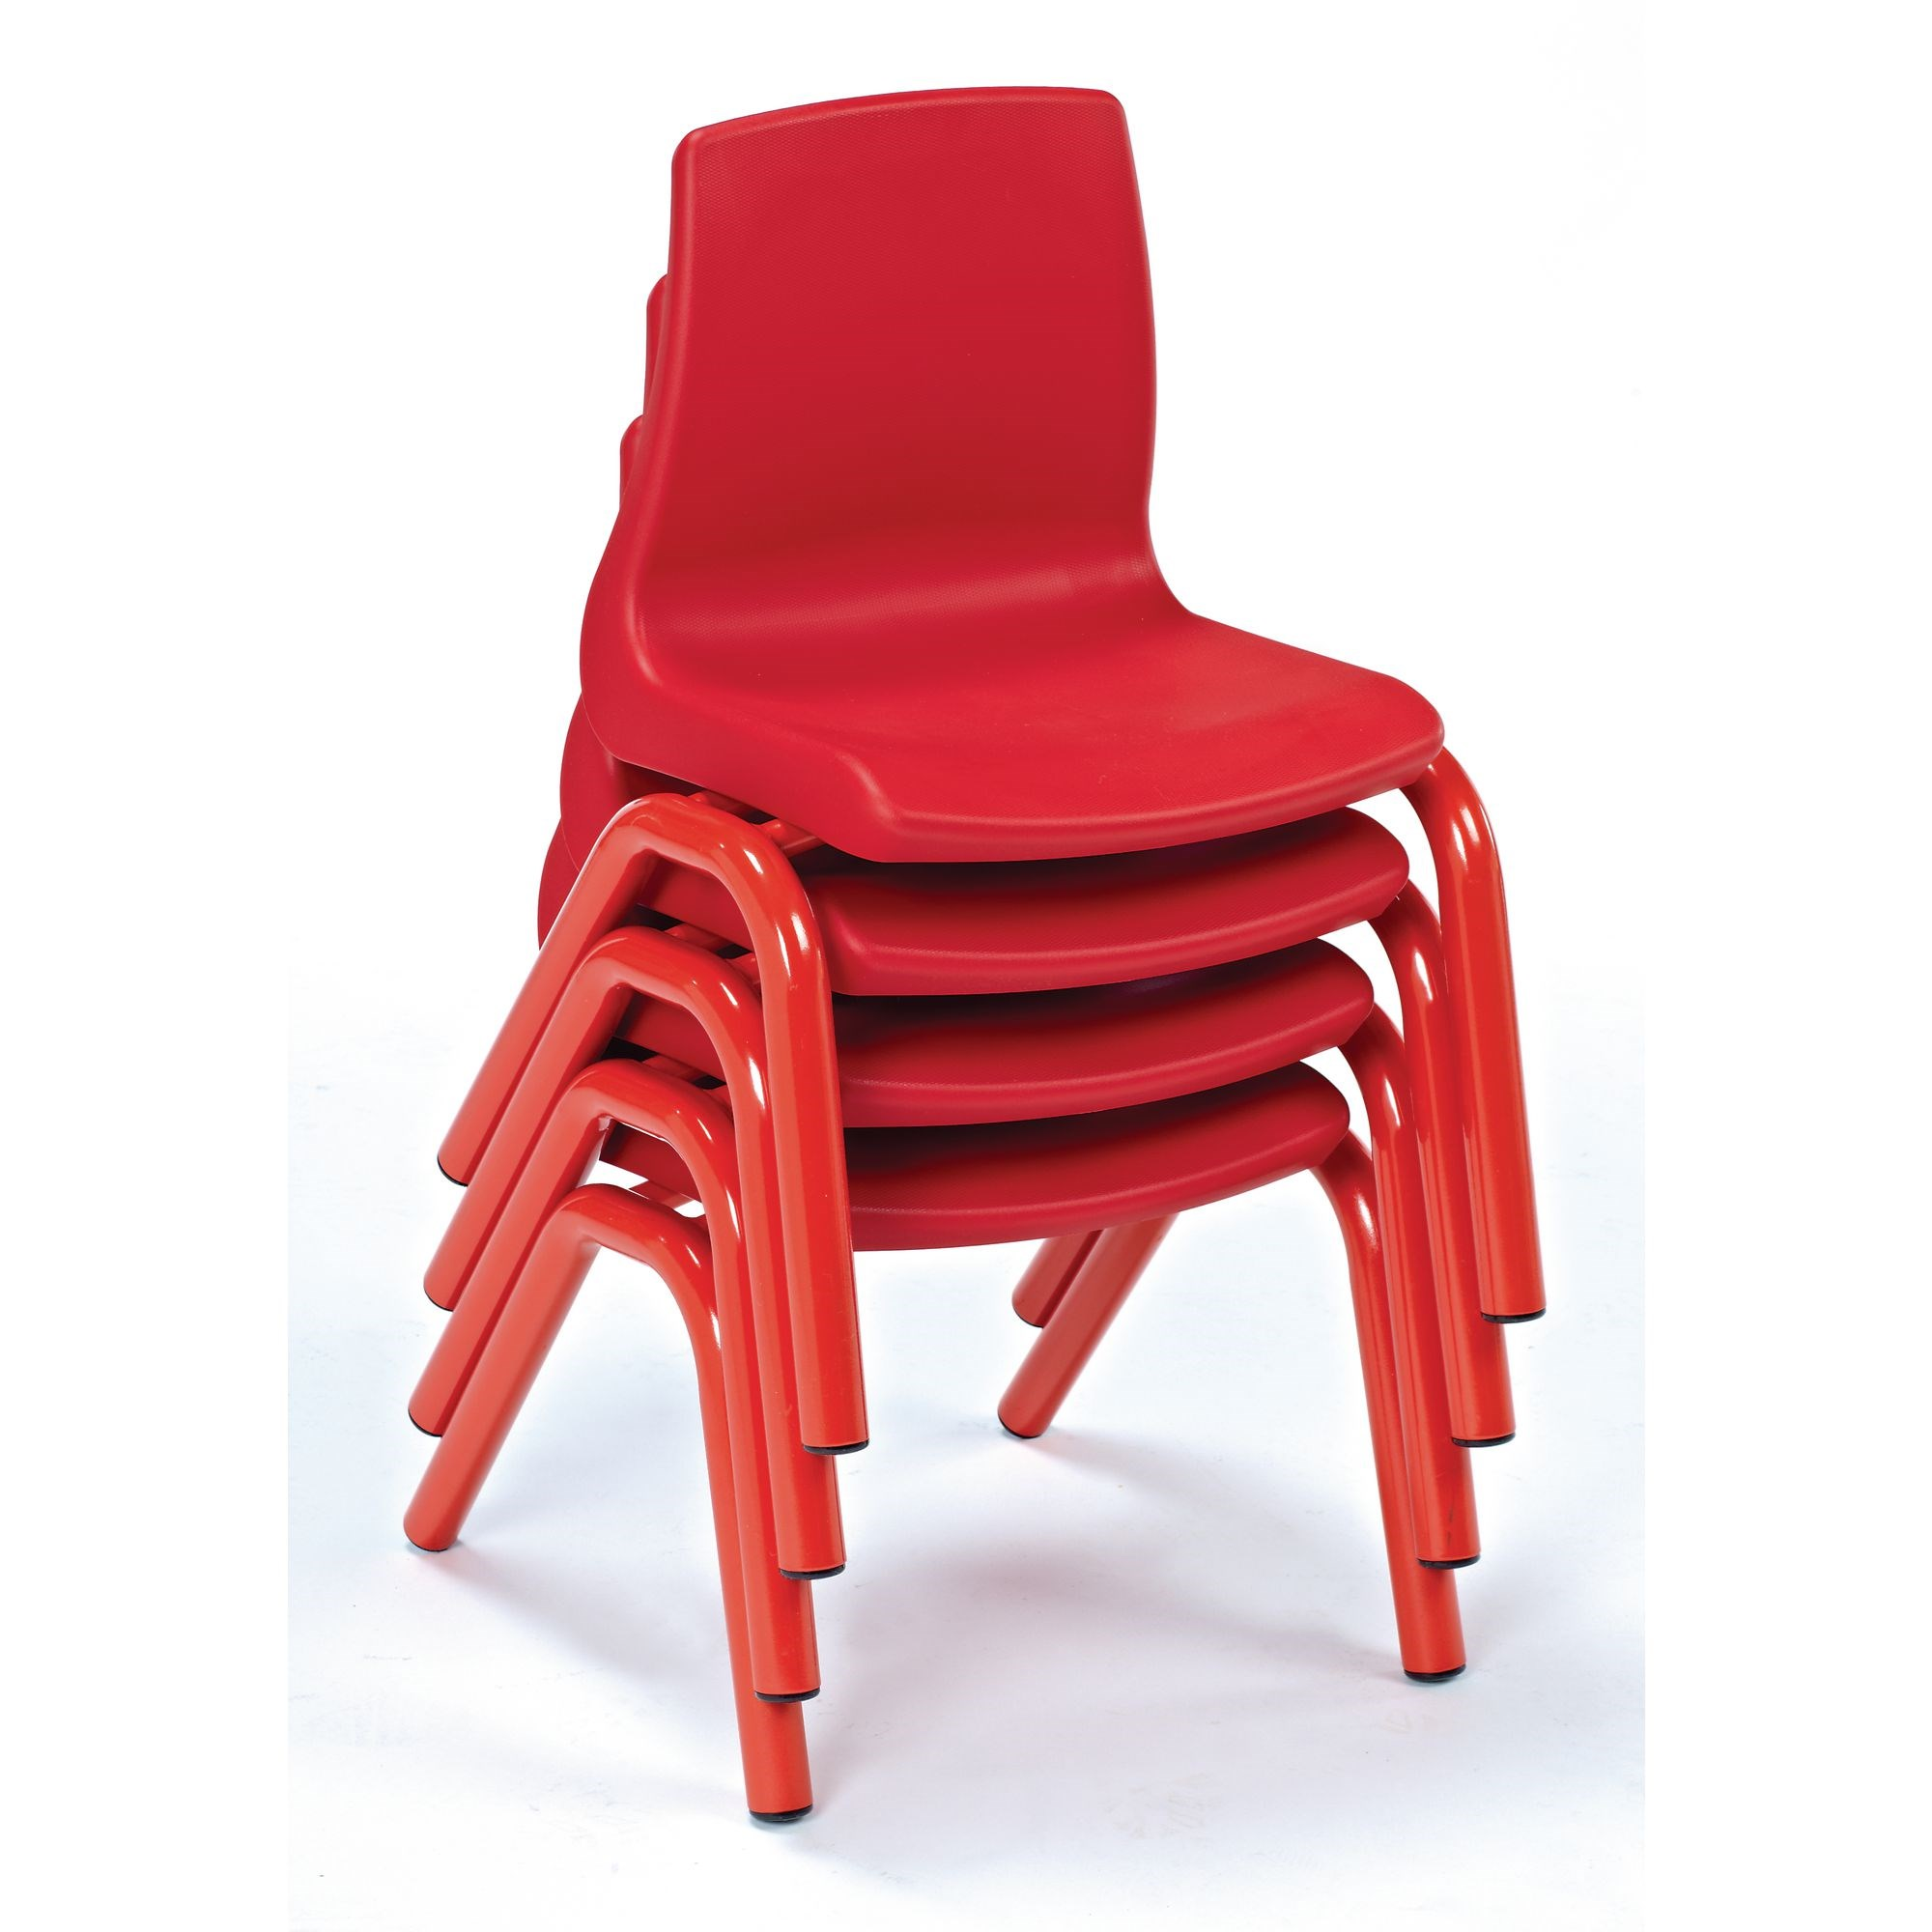 Harlequin Chairs Size B Purp